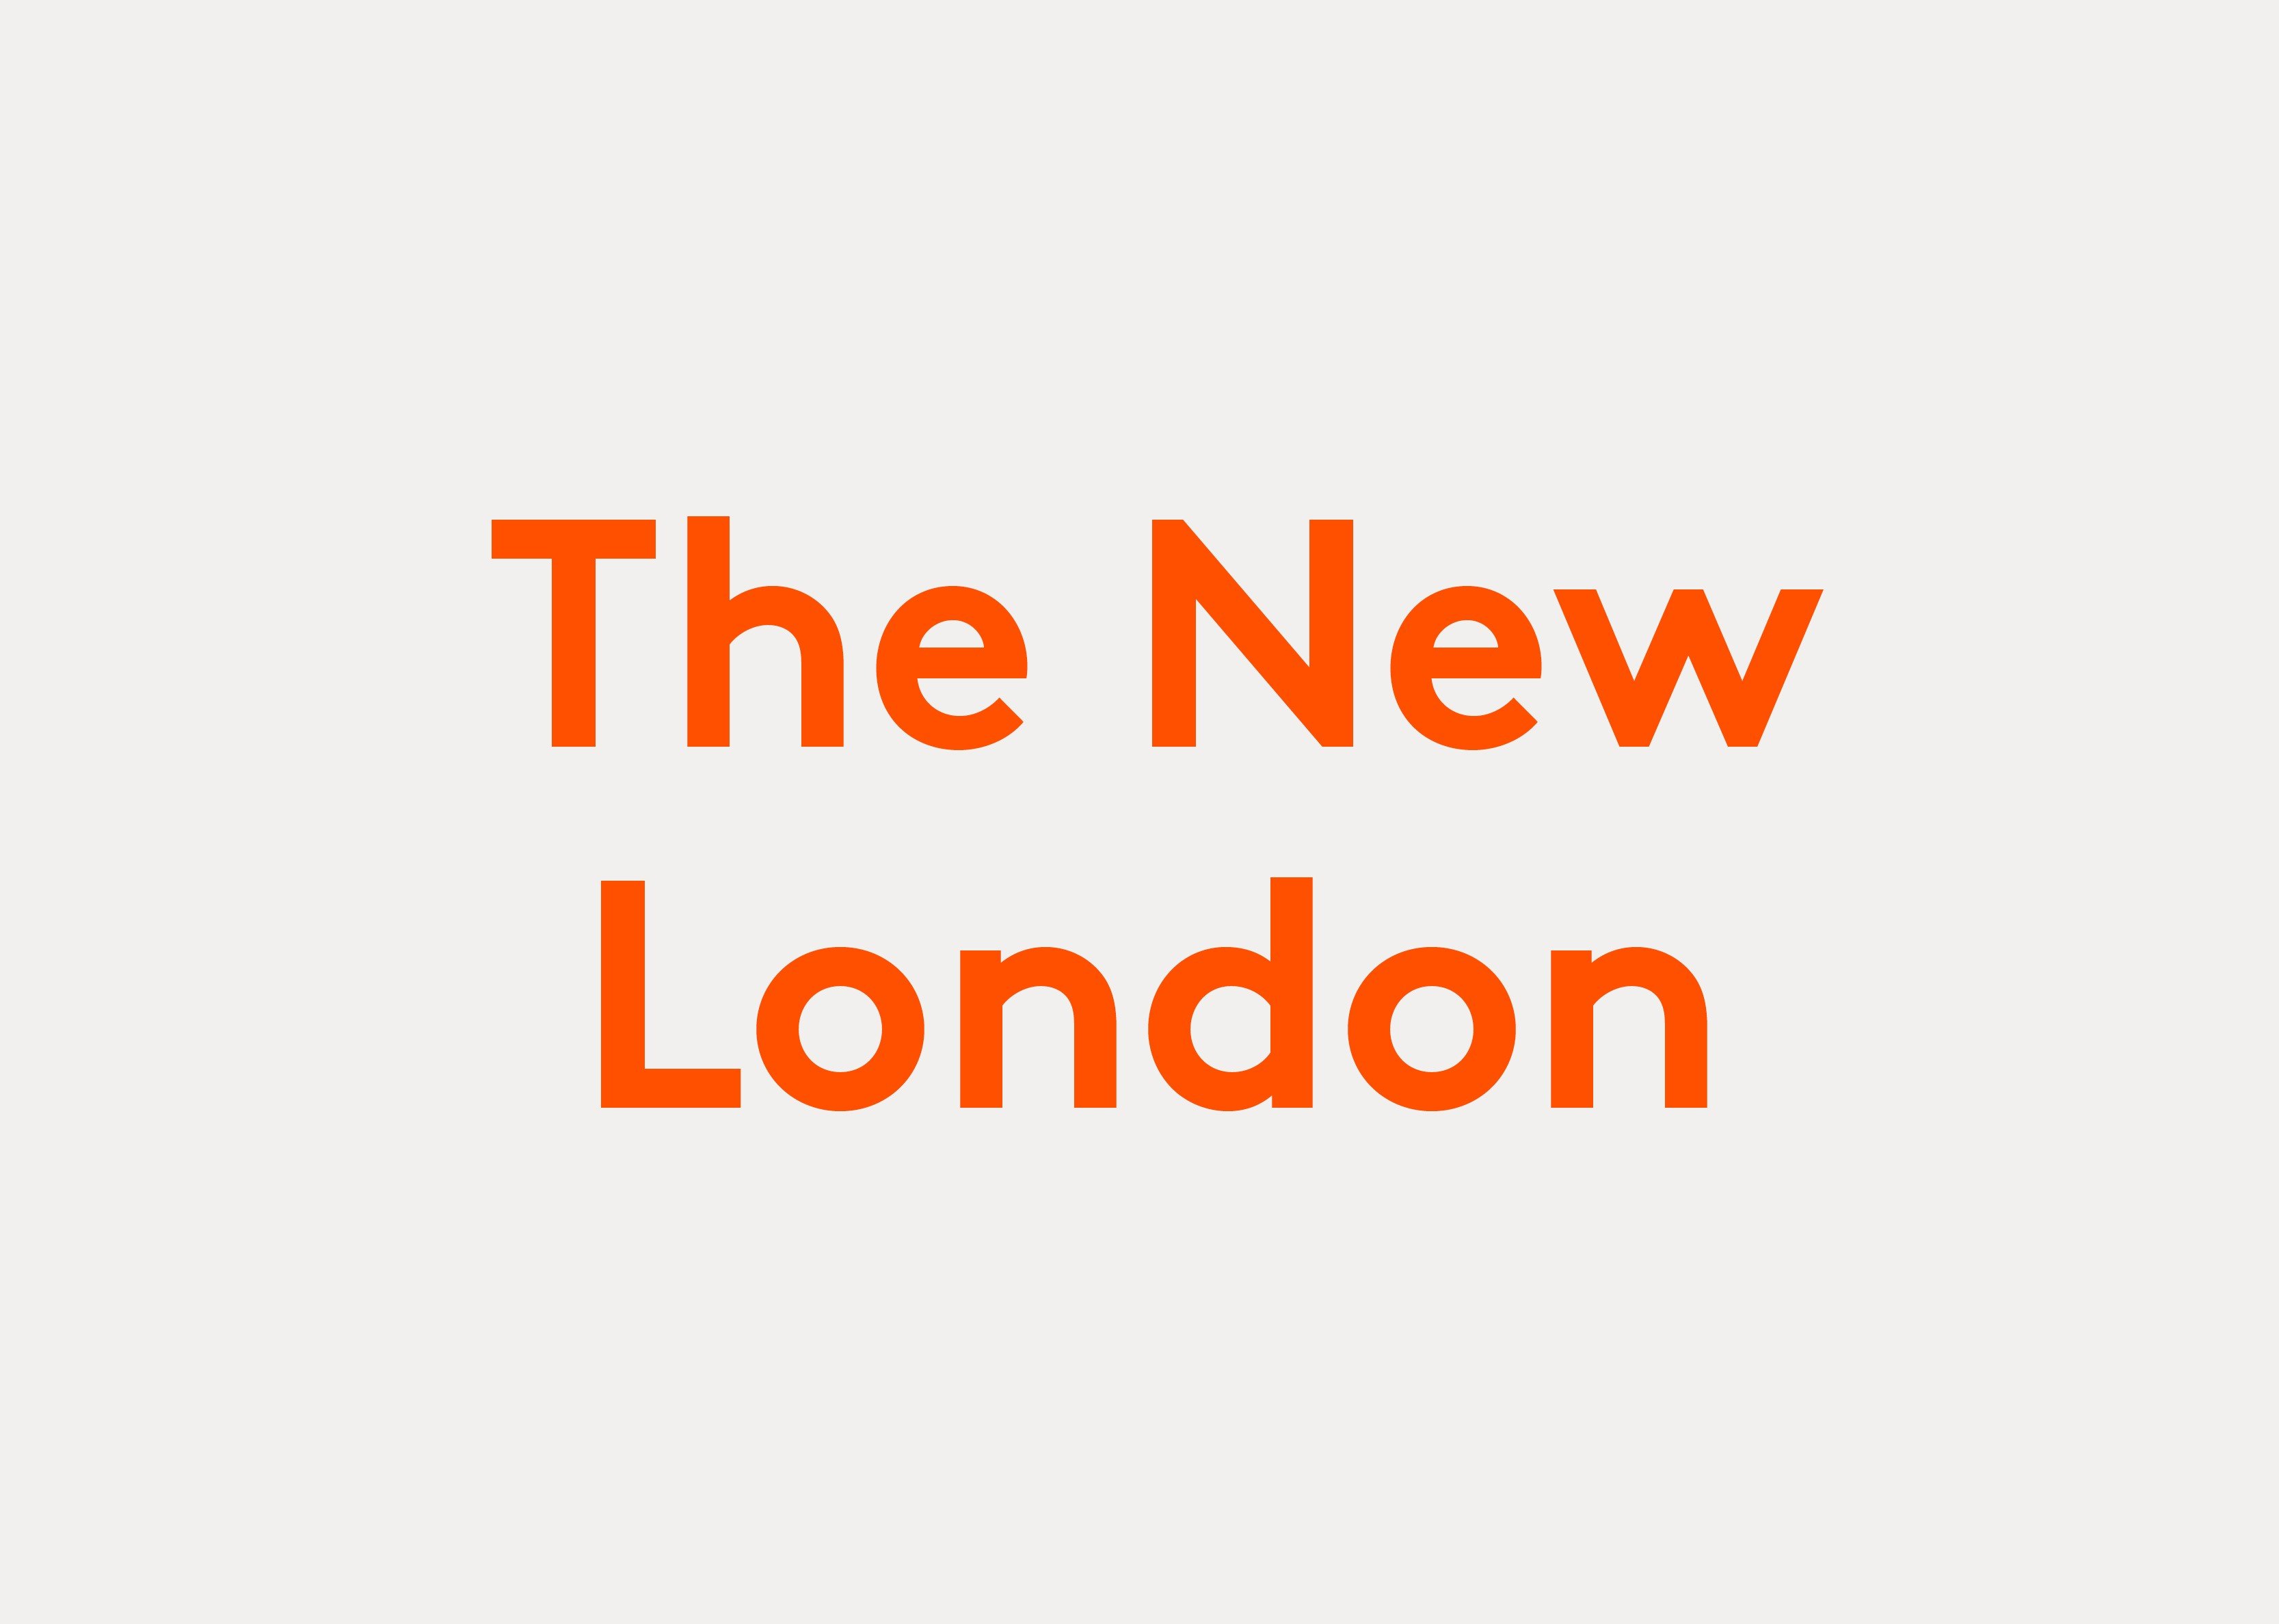 The New London